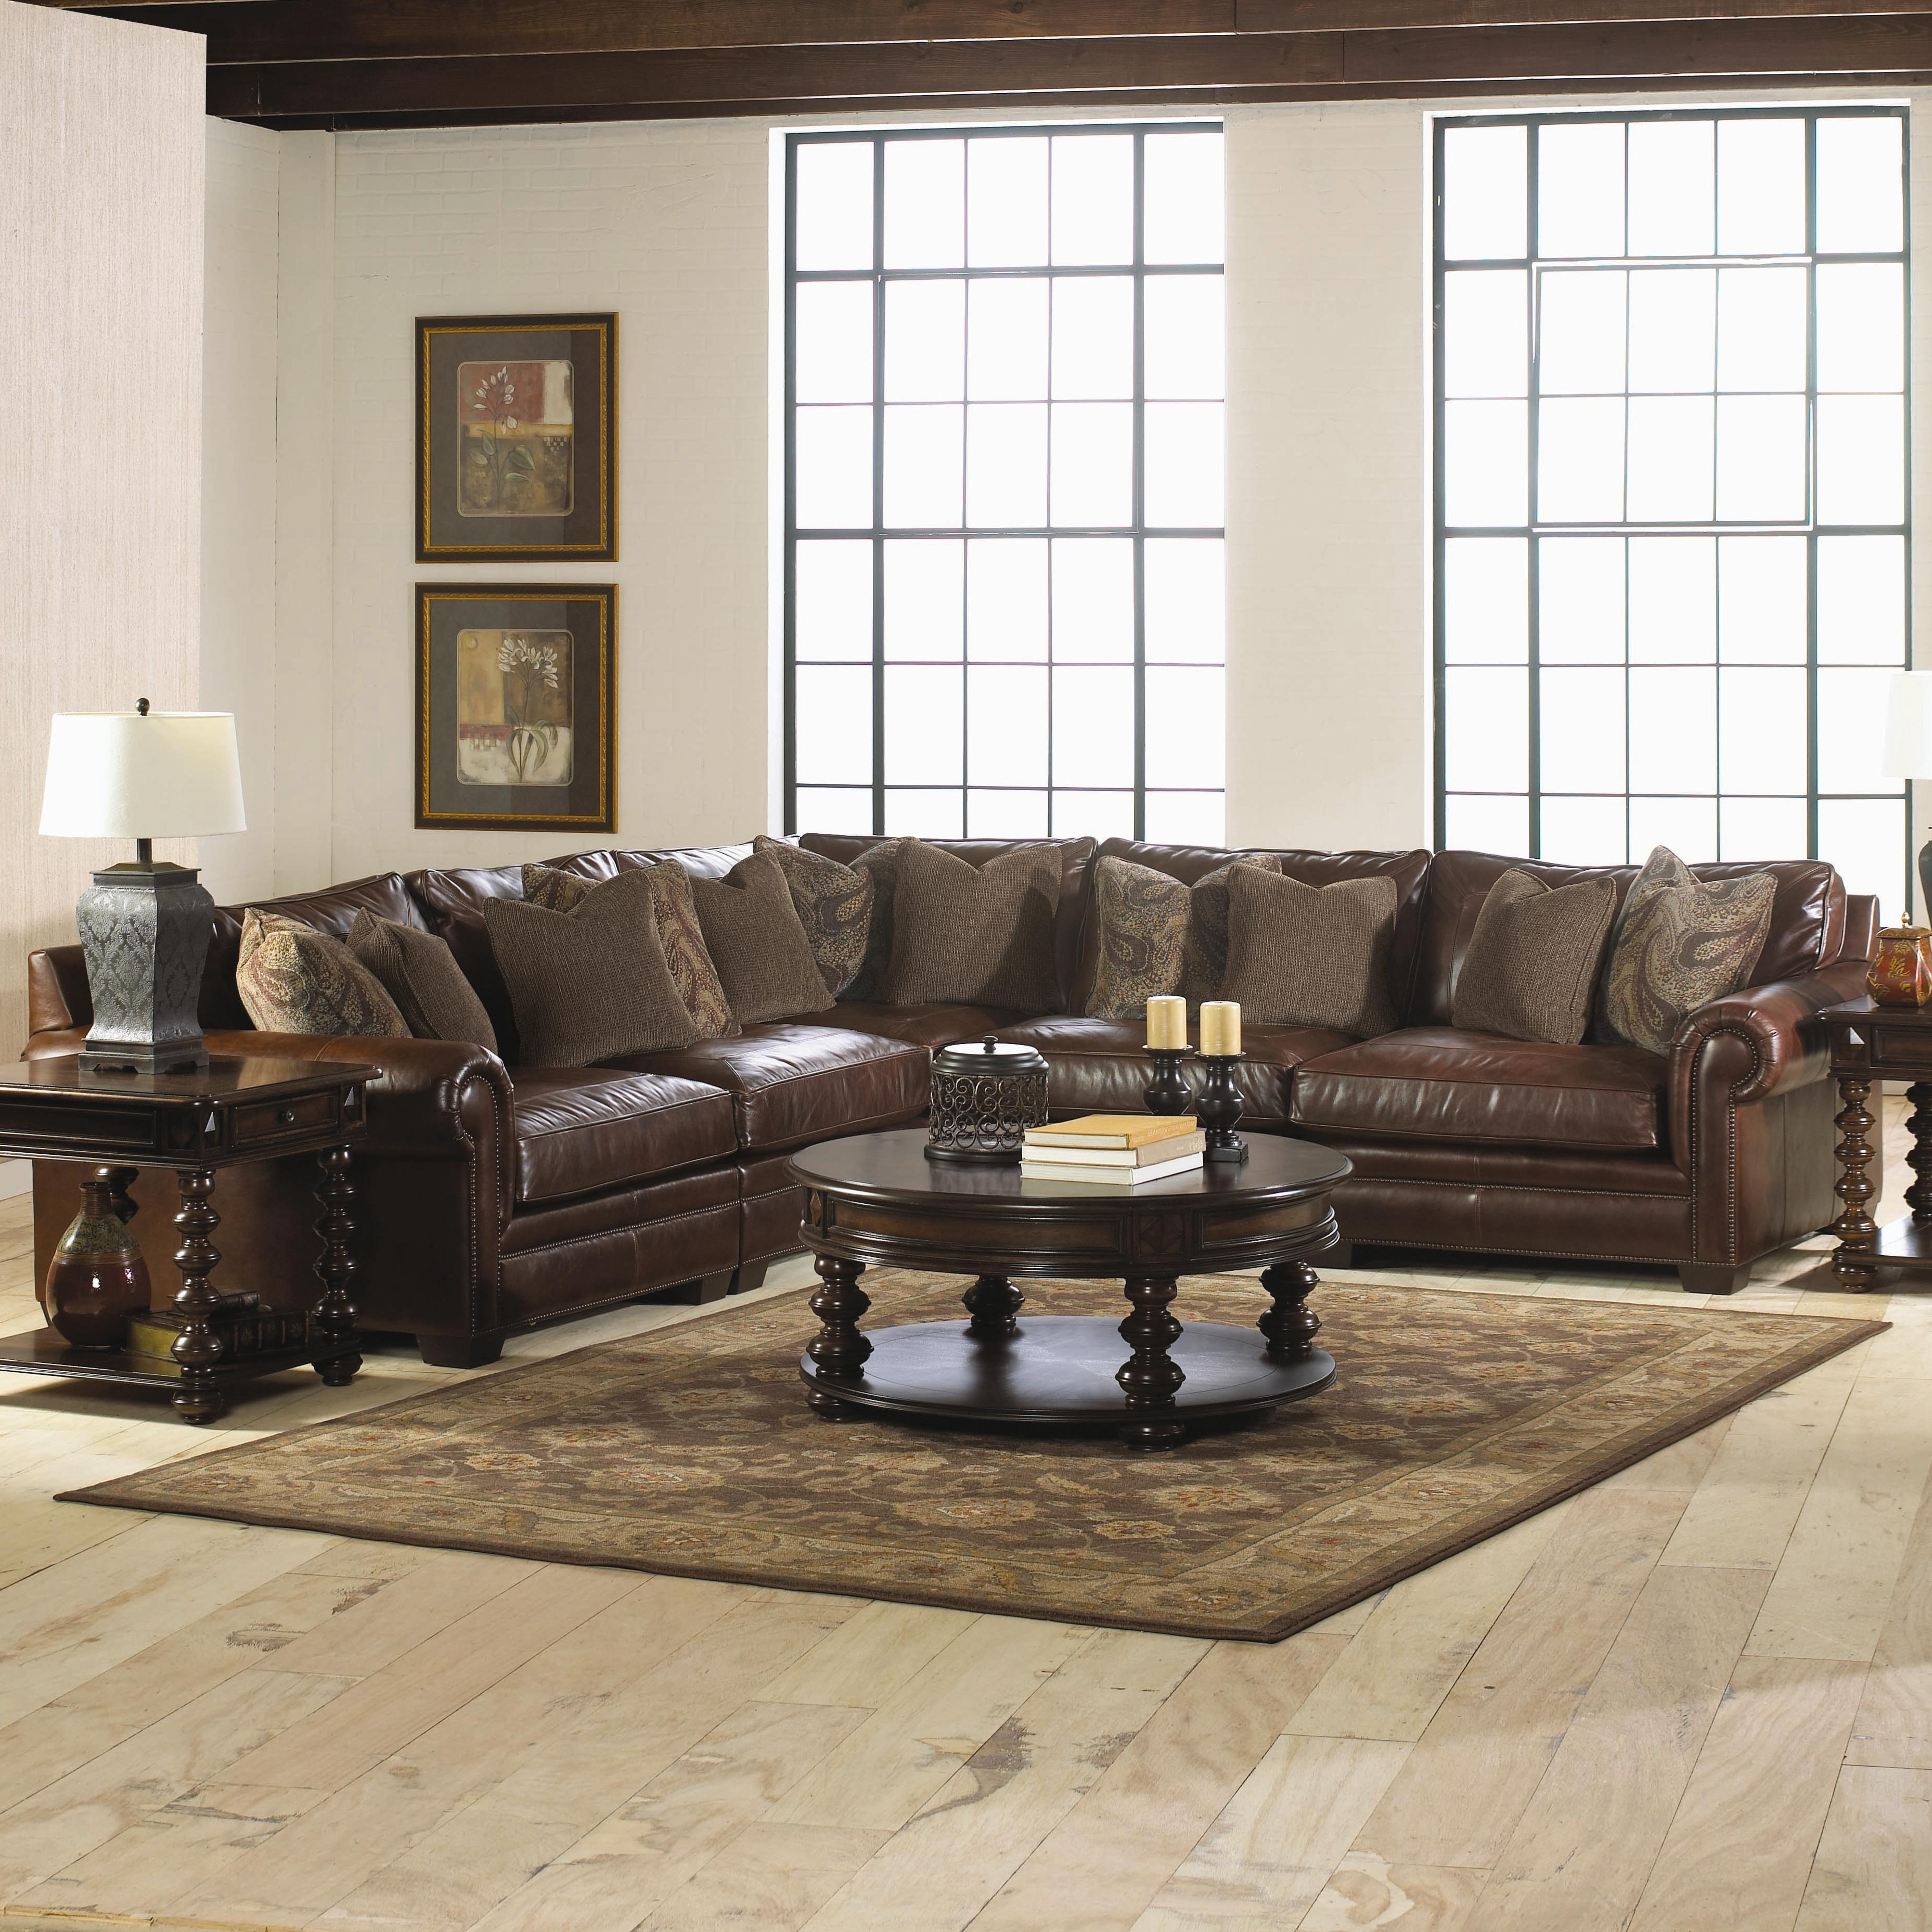 Most Current Havertys Sectional Sofas Pertaining To Furniture & Sofa: Glamorous Interior Furniture Designhavertys (View 17 of 20)